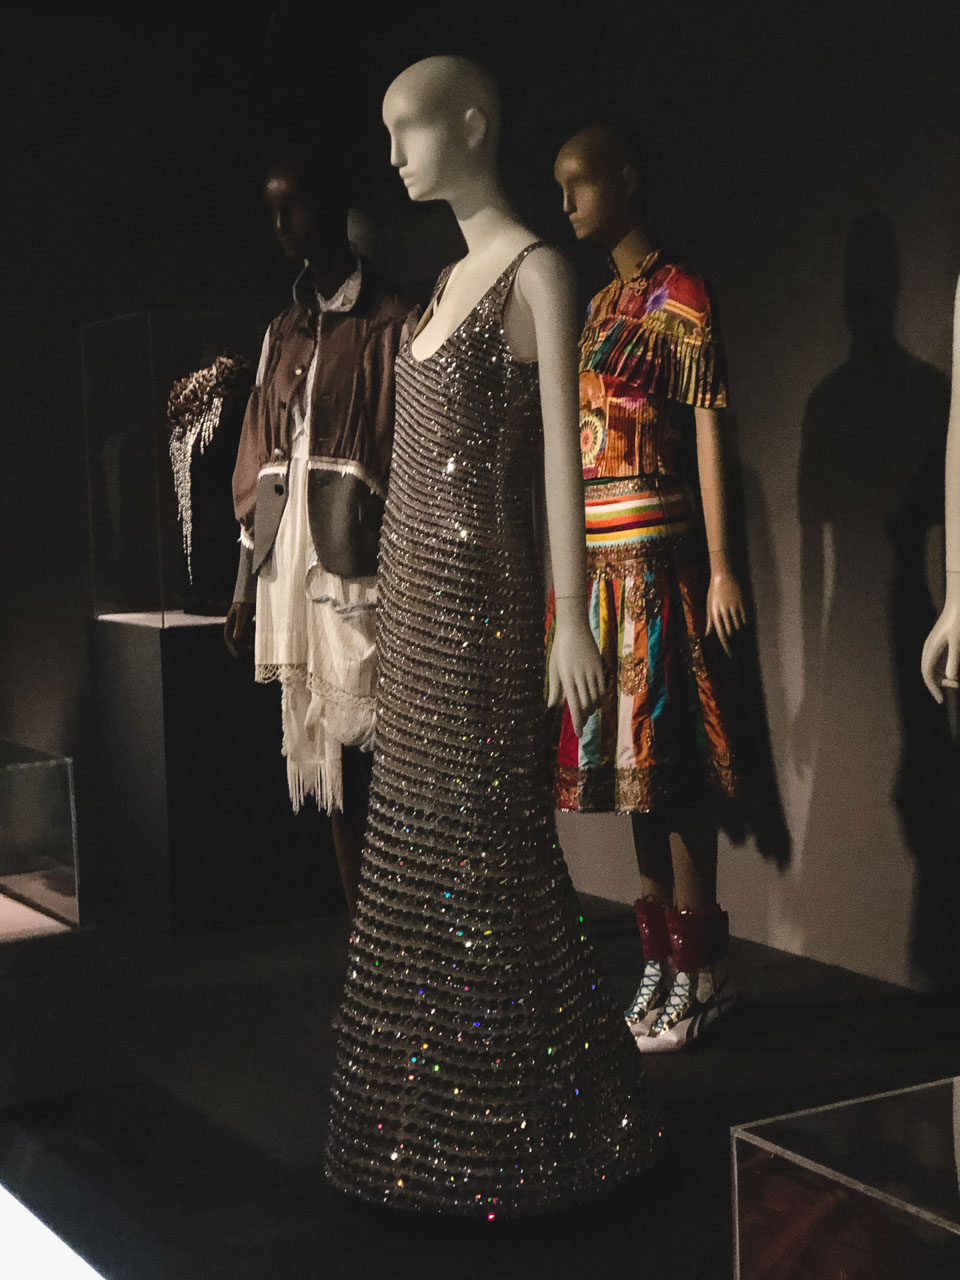 A sparkly dress on display at the Museum at the Fashion Institute of Technology in New York